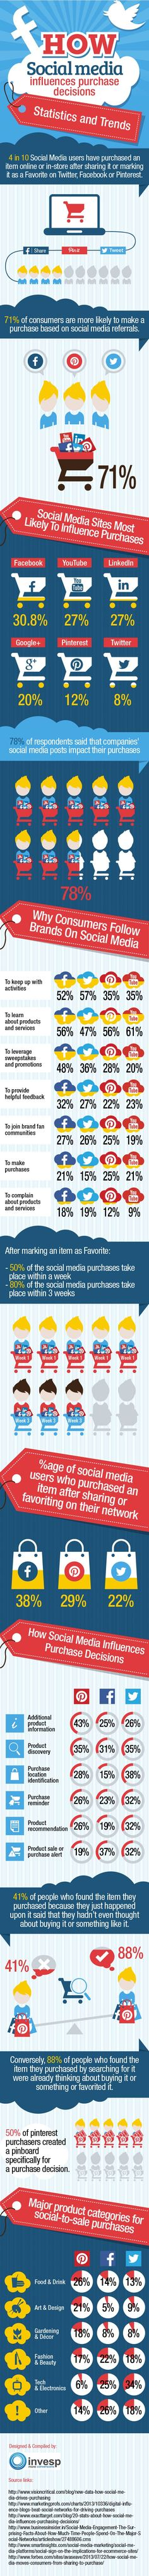 How #SocialMedia Influences Purchase Decisions – Statistics And Trends #Infographic #SMM | Propel Marketing